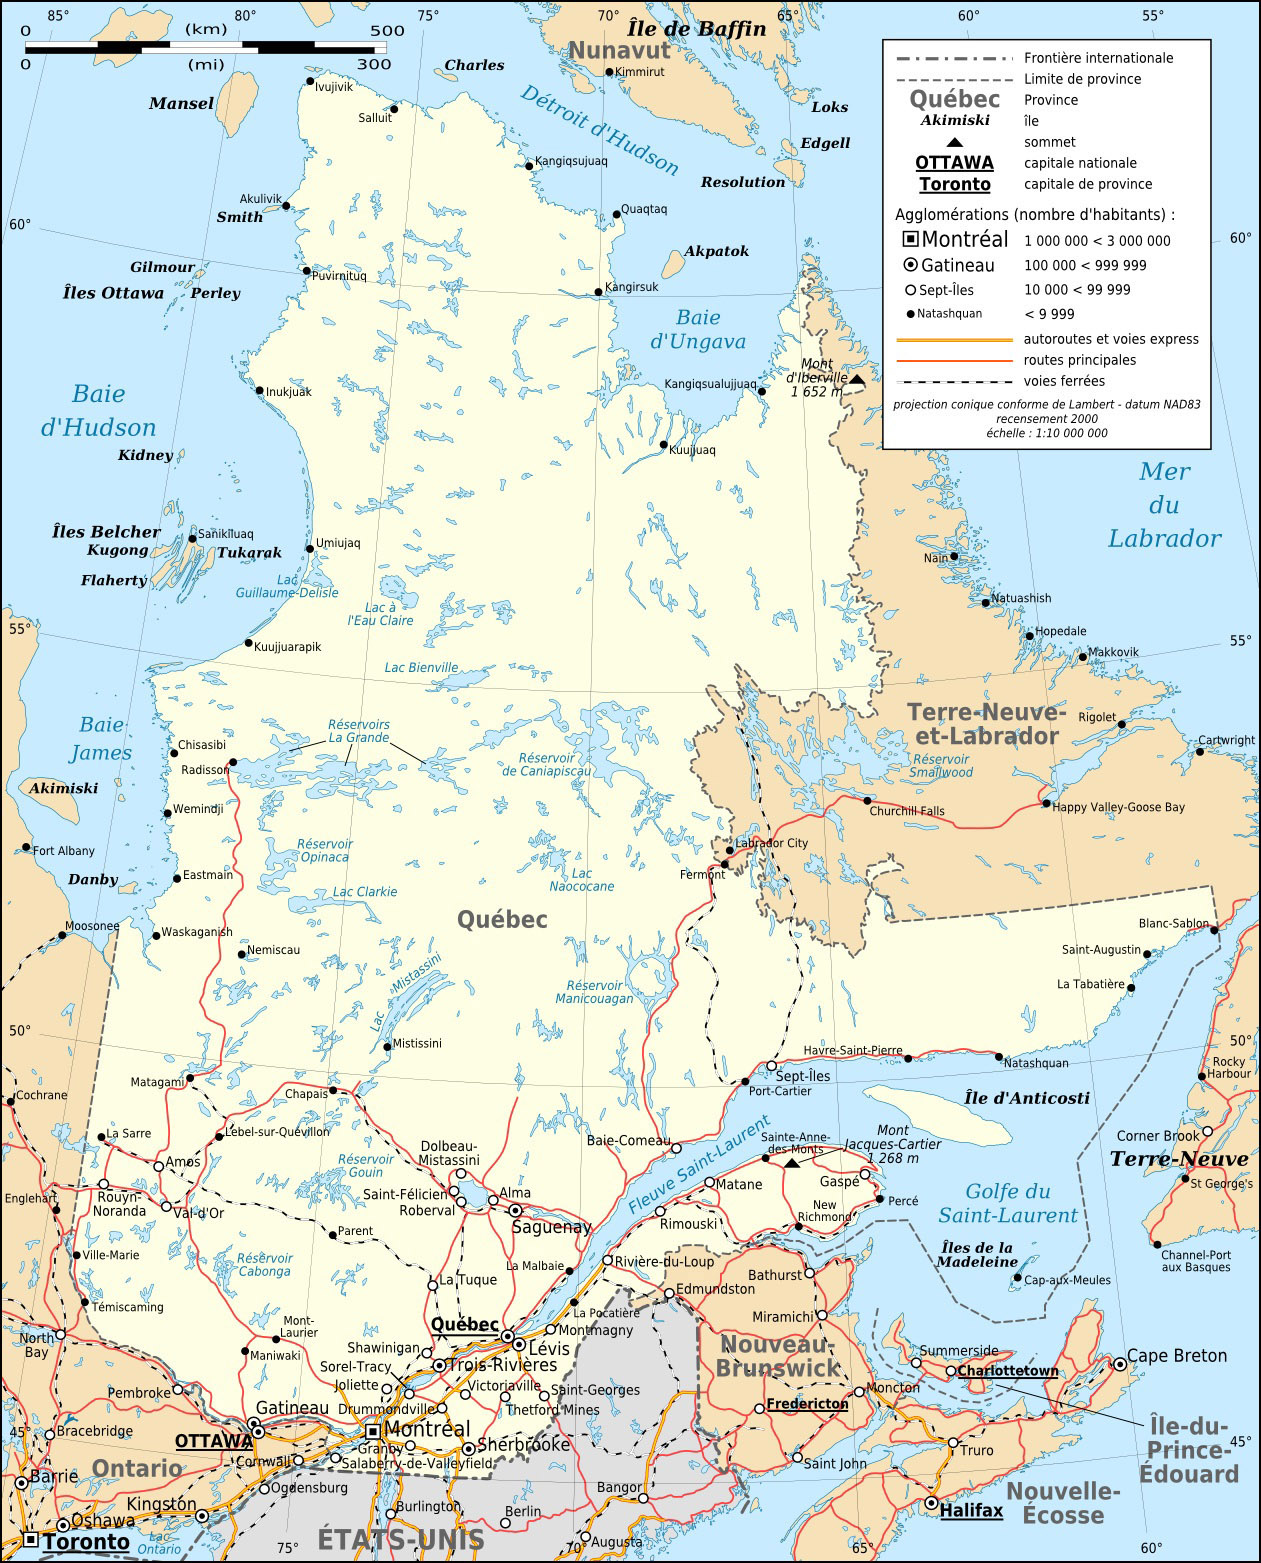 Quebec_province_transportation_and_cities_map-fr